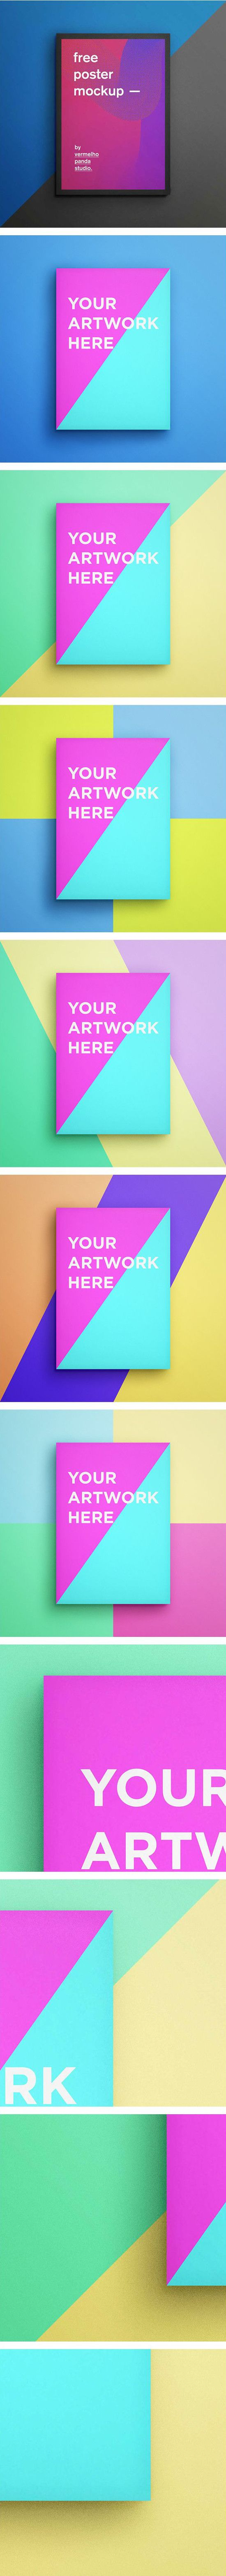 Free A3 and A4 Poster Mockup by Aline Jorge